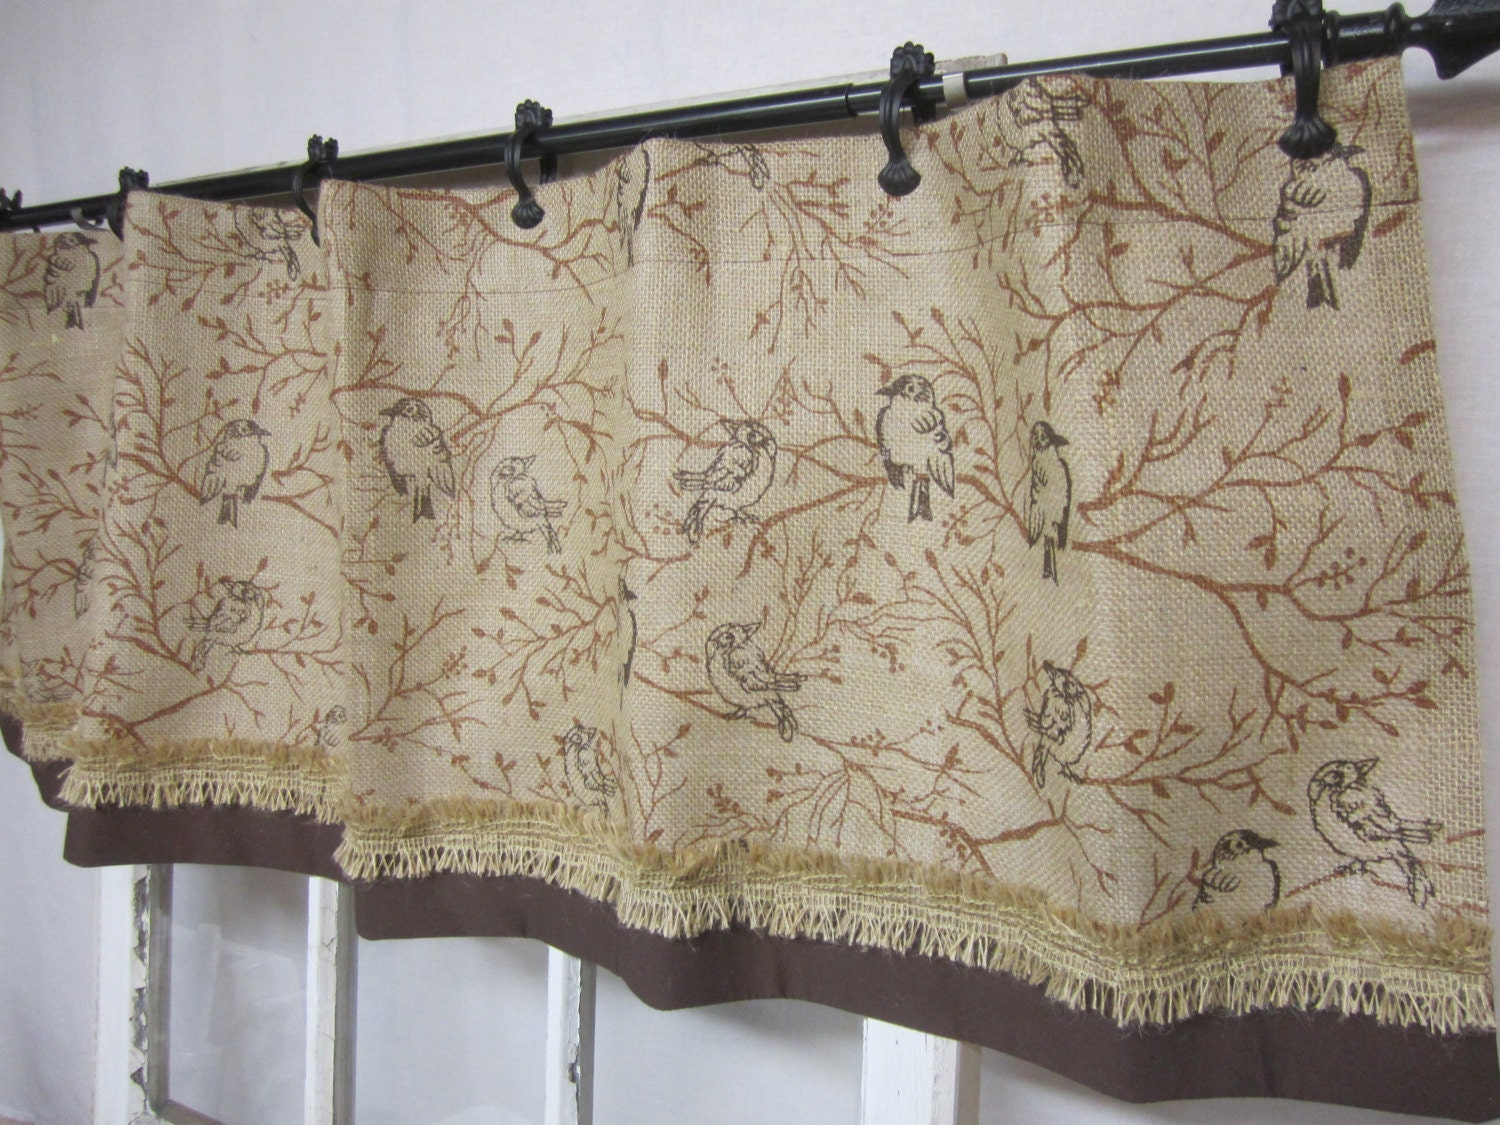 Burlap Valances For Windows : Burlap curtain valance bird printed by